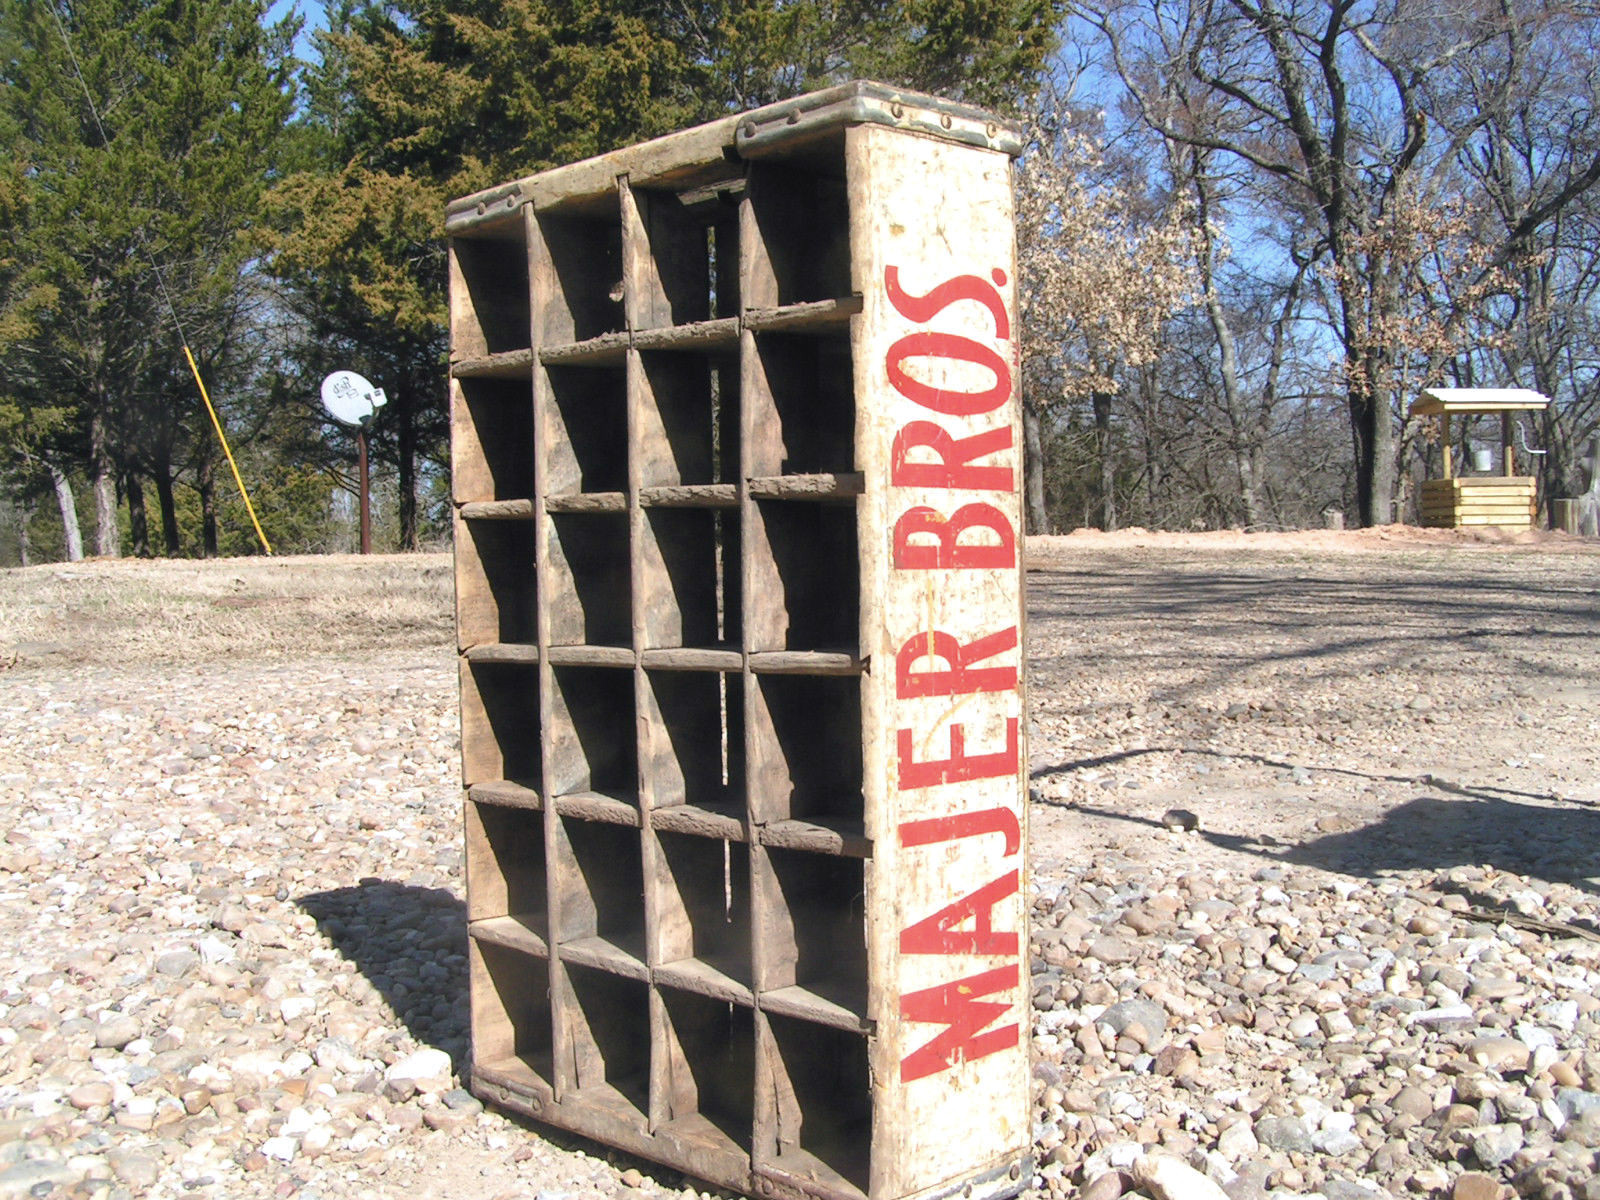 Old wooden soda crate majer brothers bottle carrier 2023 for Wooden soda crate ideas